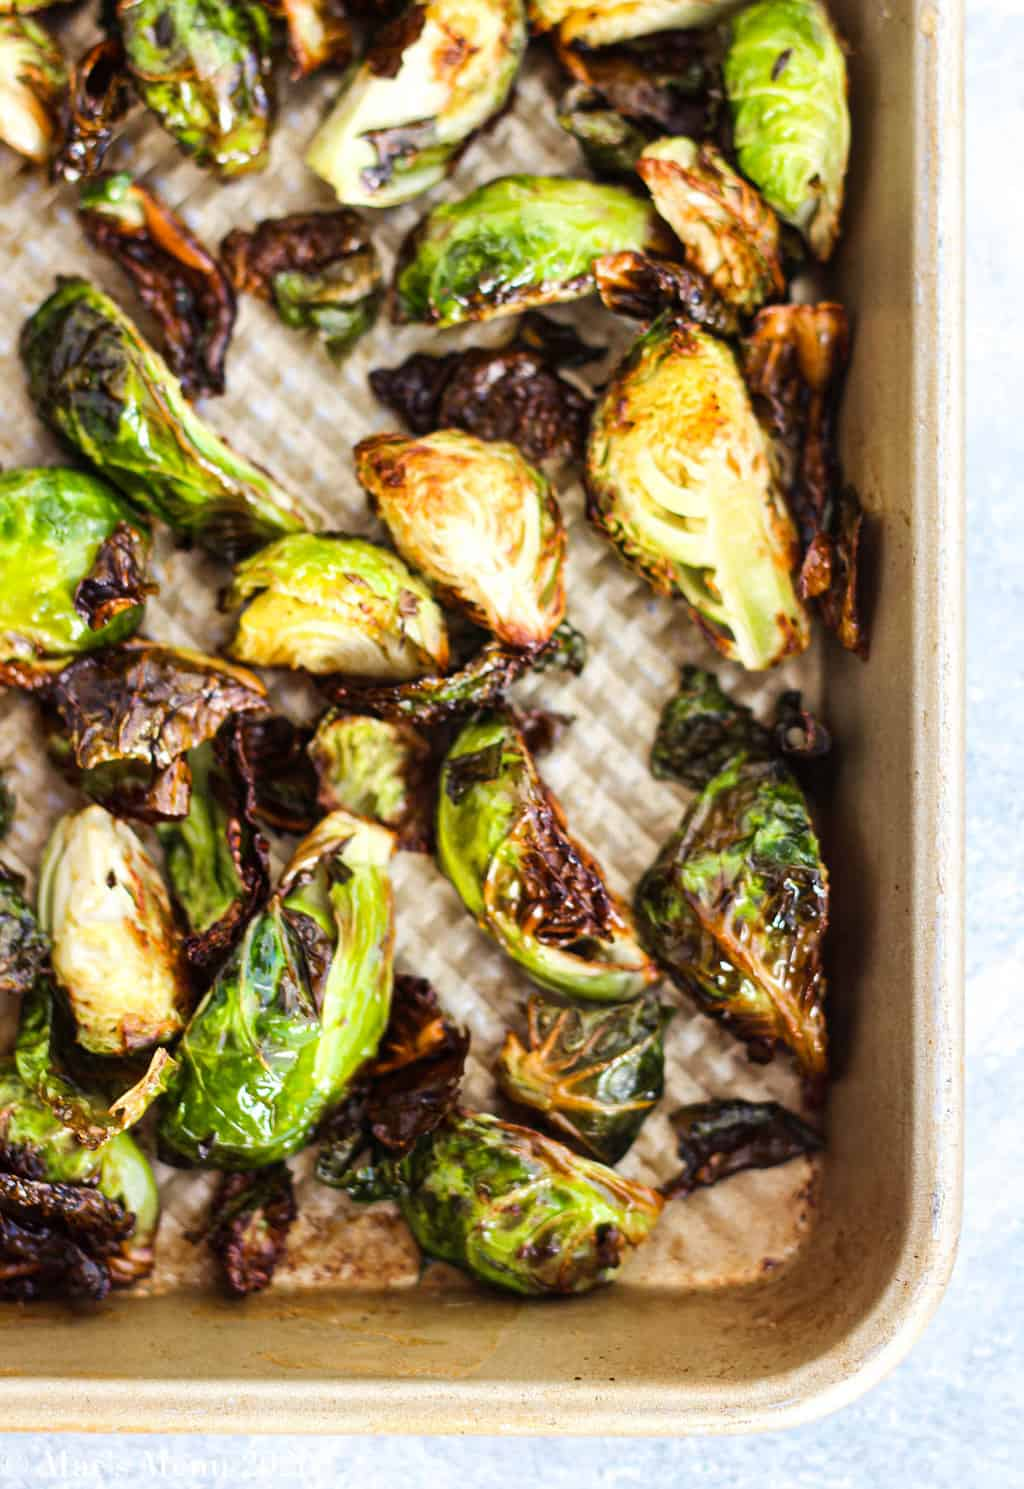 An upclose overhead shot of air fryer brussel sprouts on a baking pan